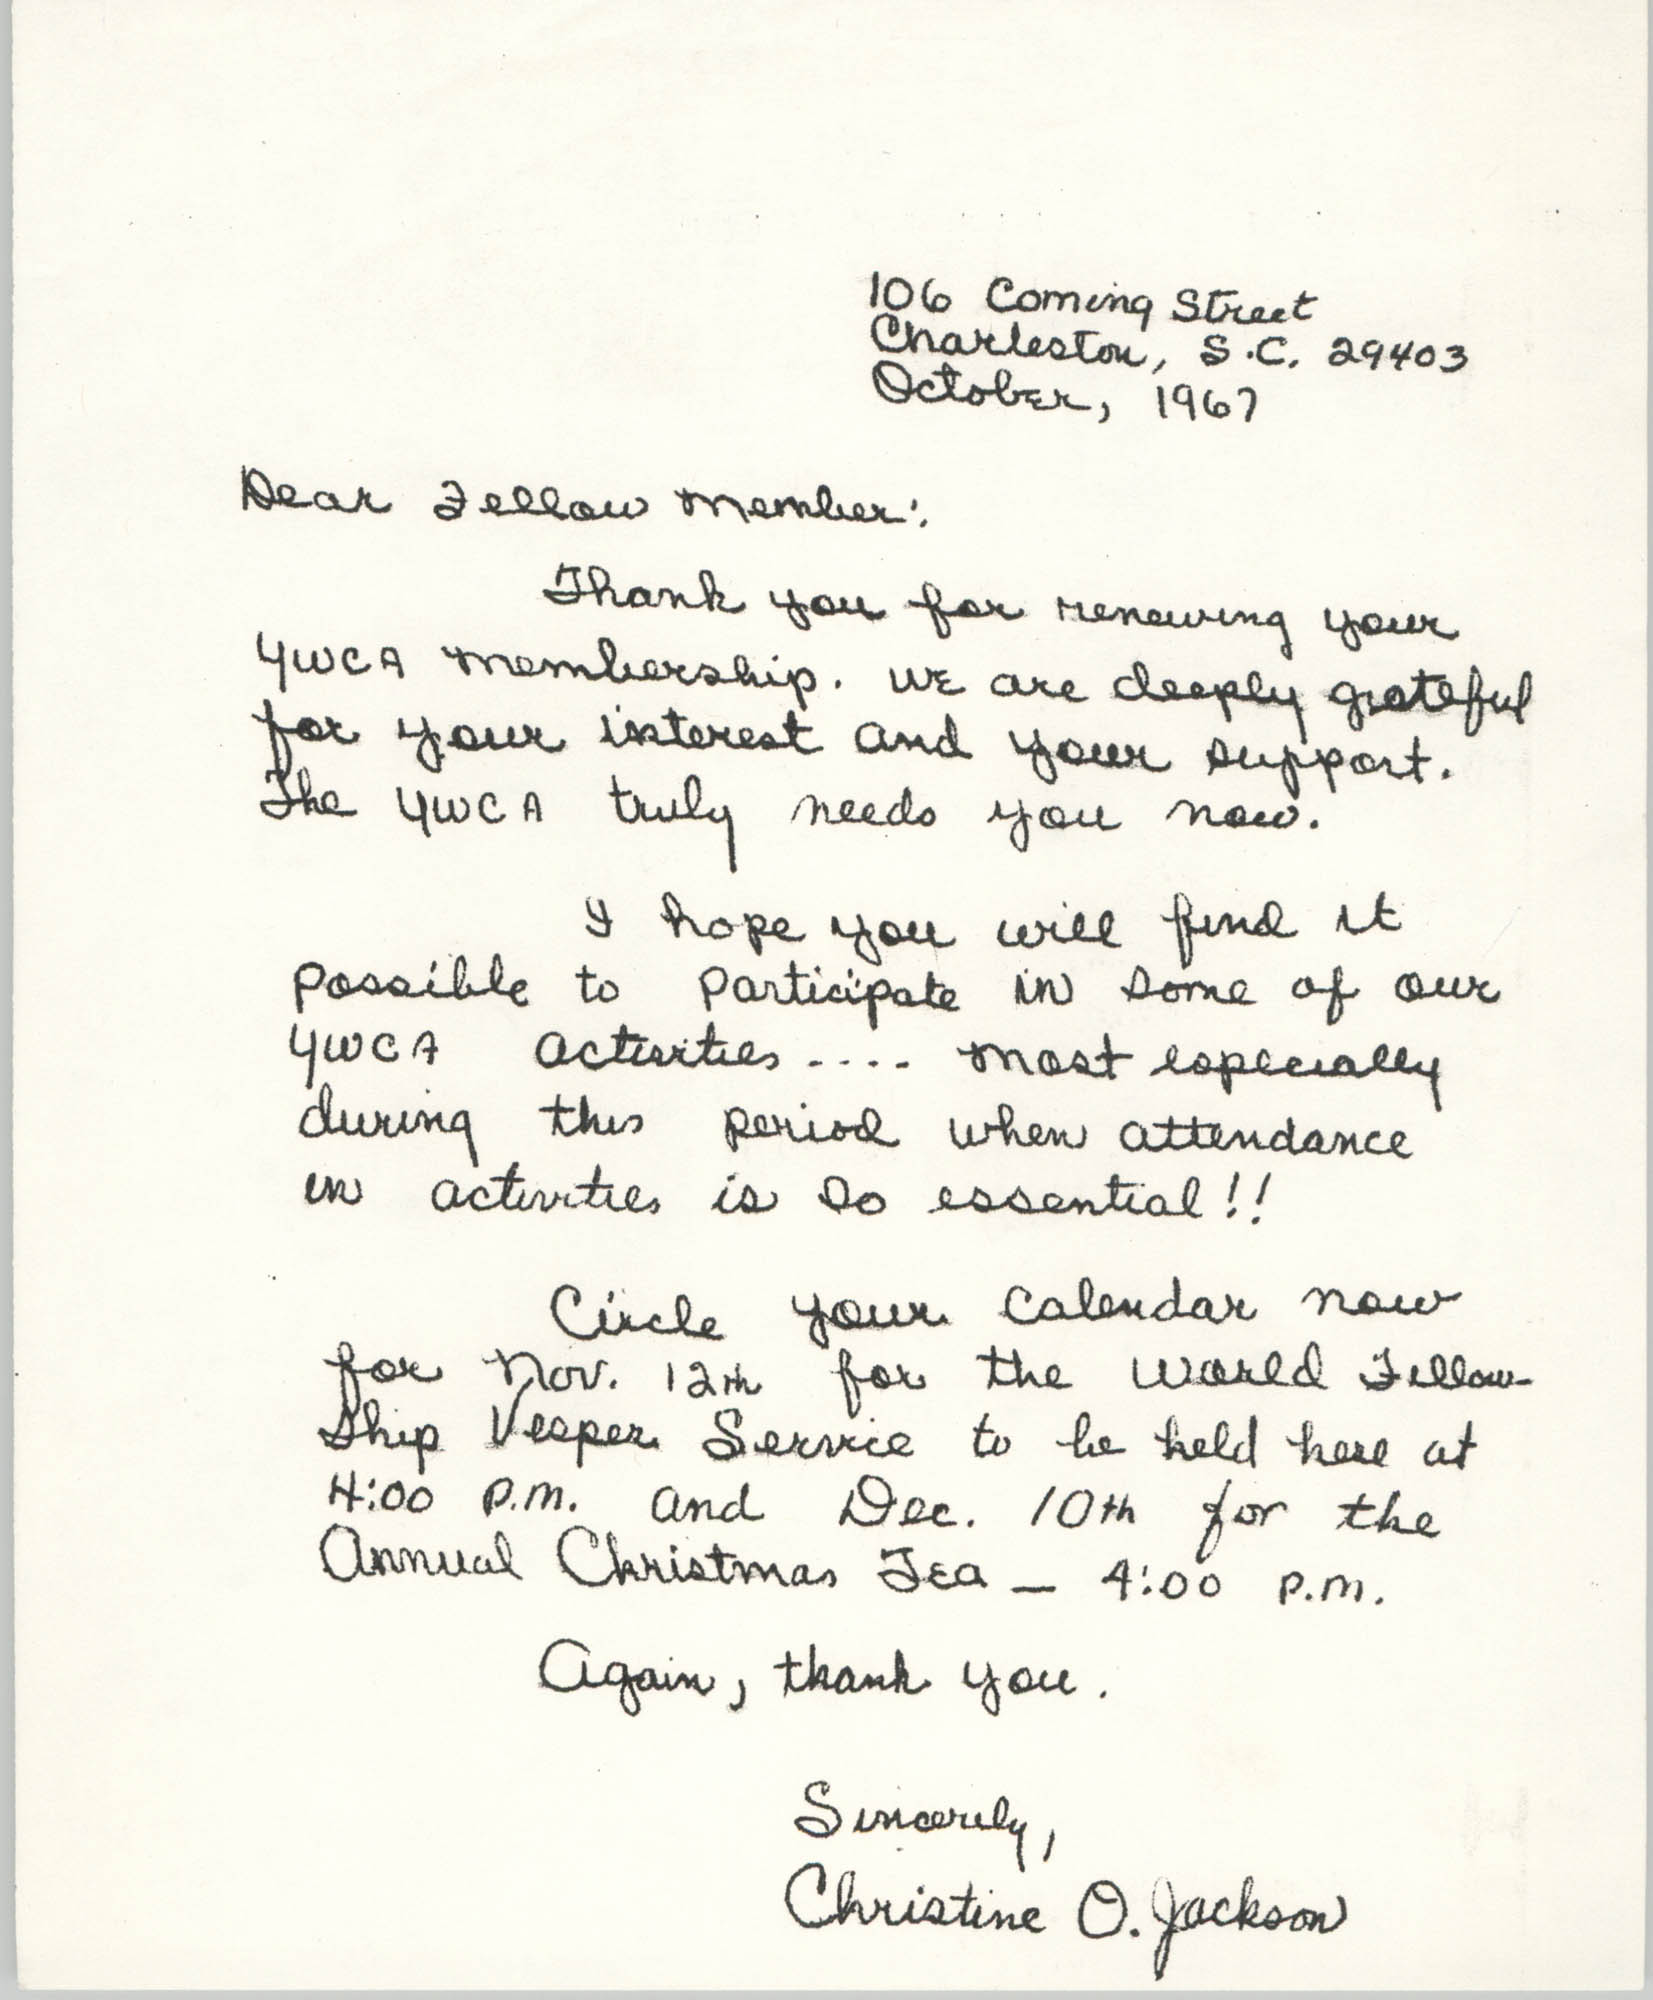 Letter from Christine O. Jackson, October 1967